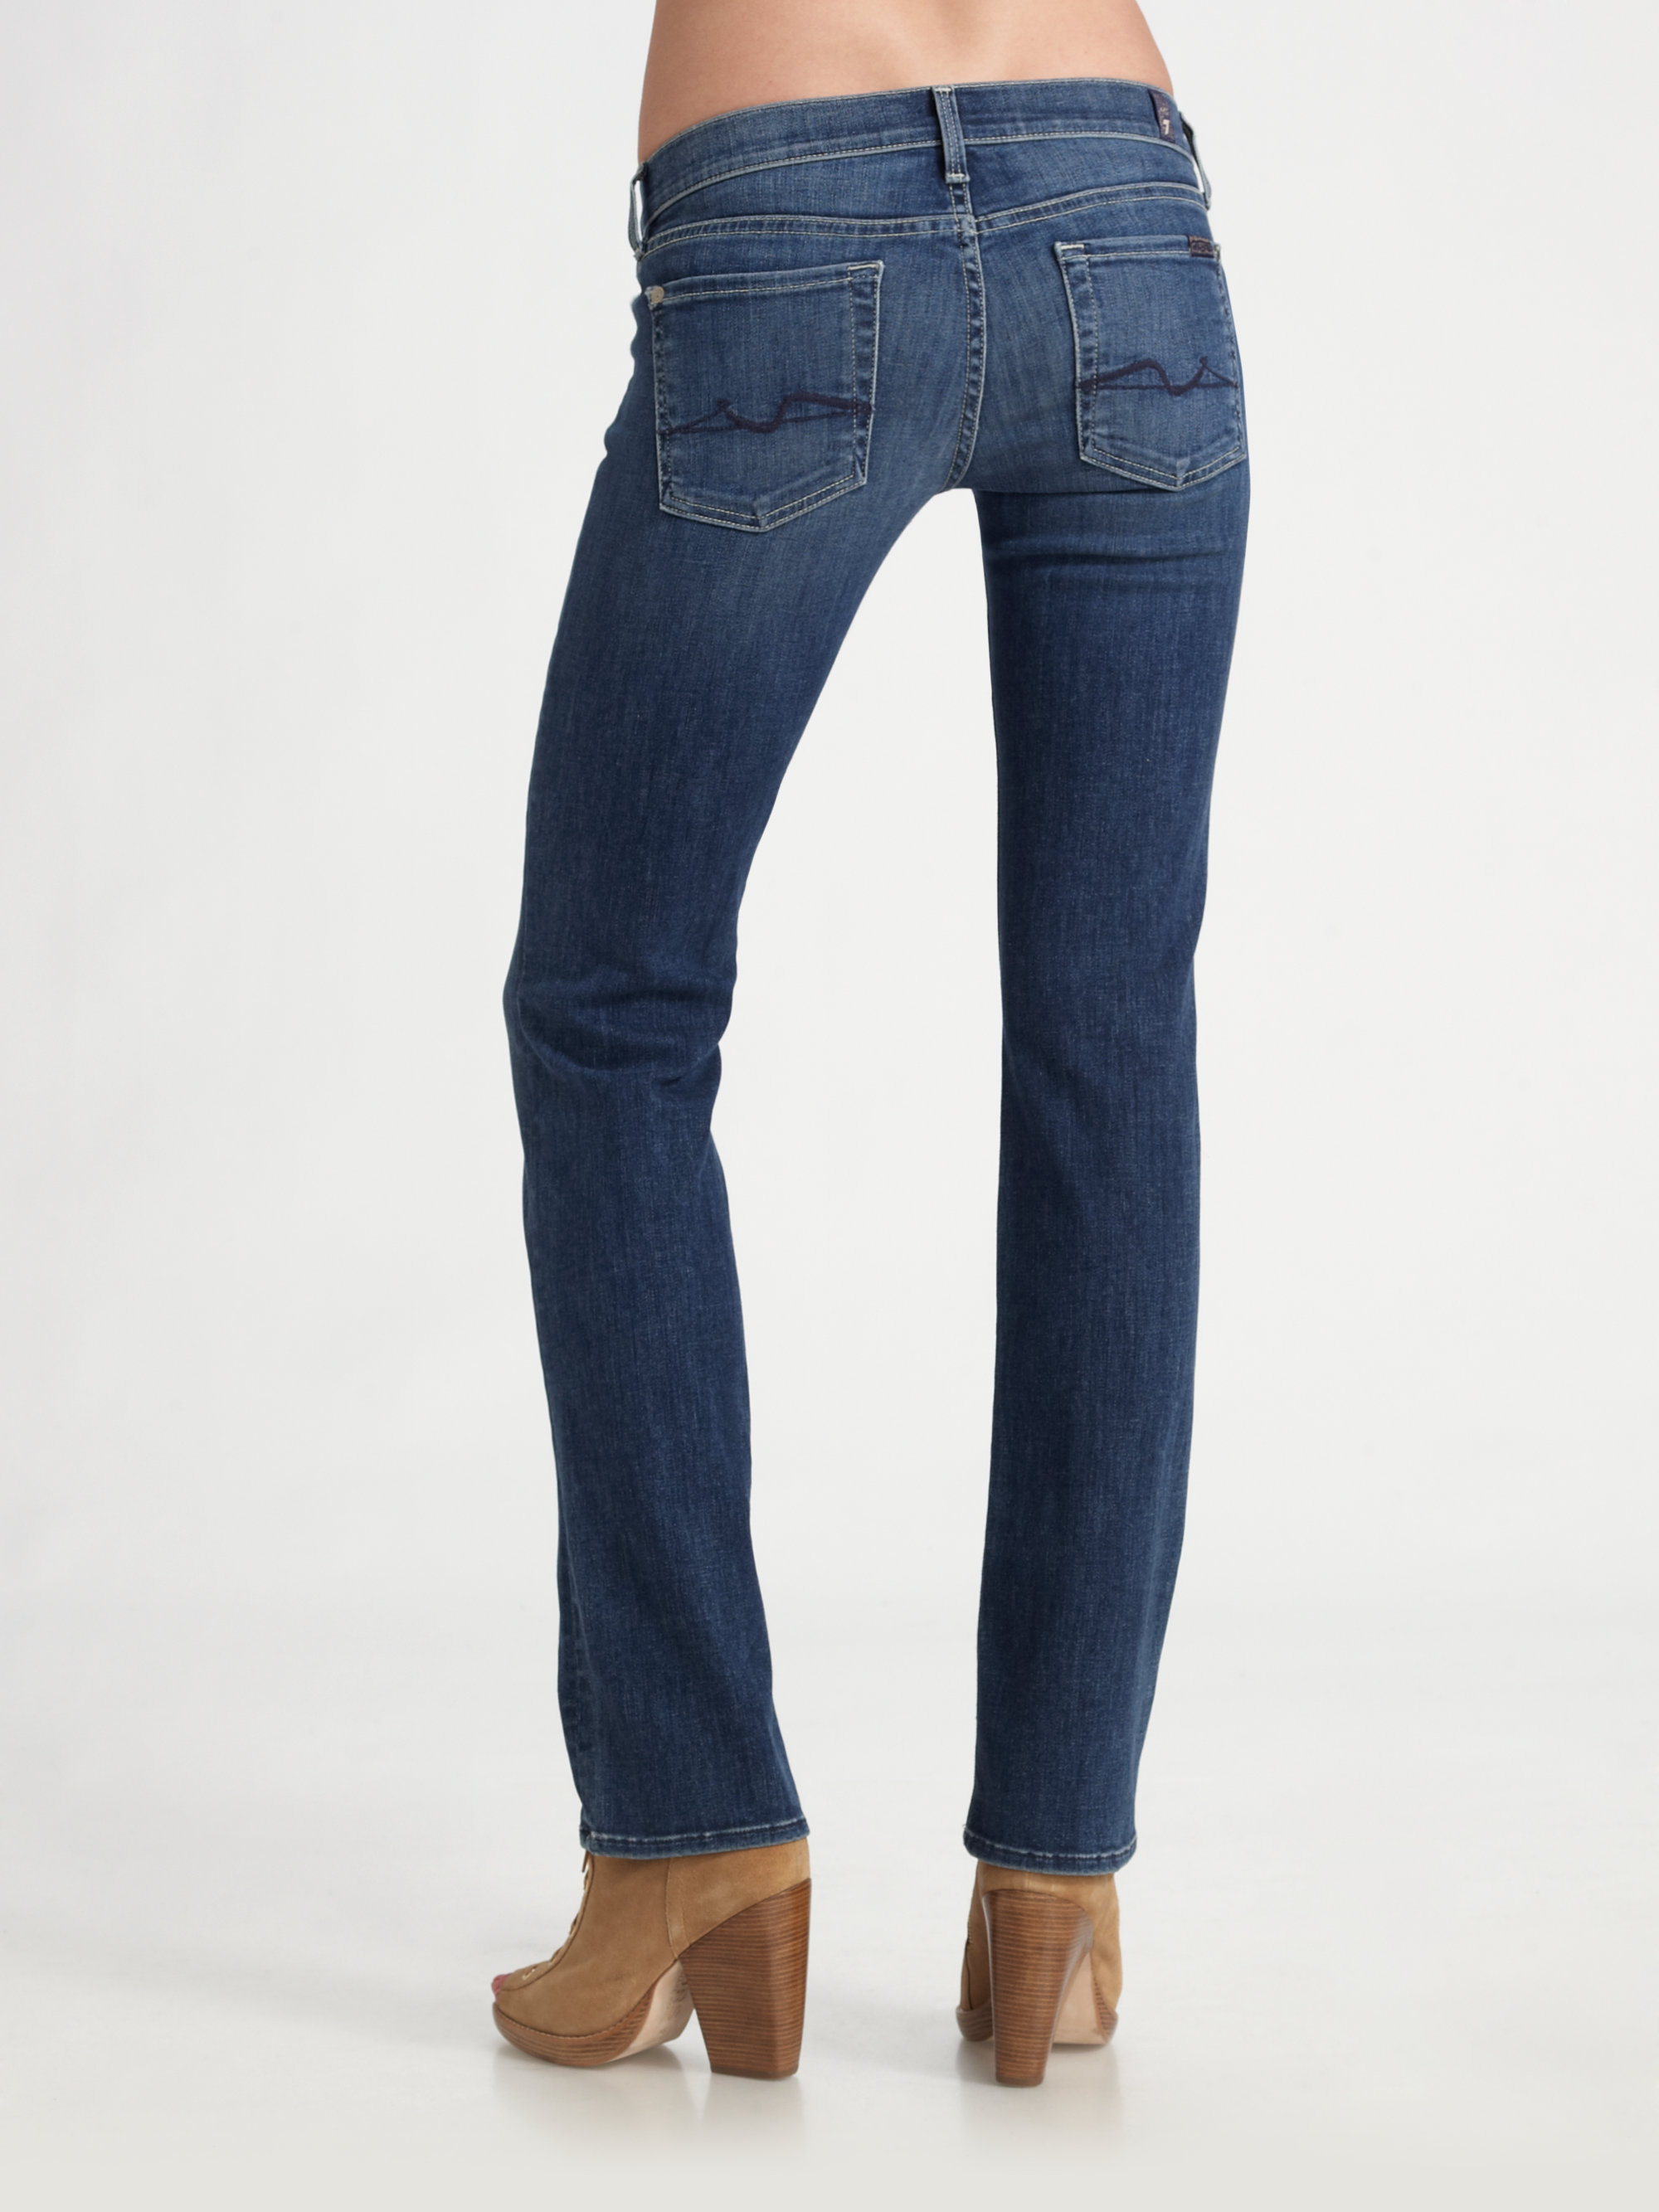 7 for all mankind Lexie Petite Straight-leg Jeans in Blue | Lyst